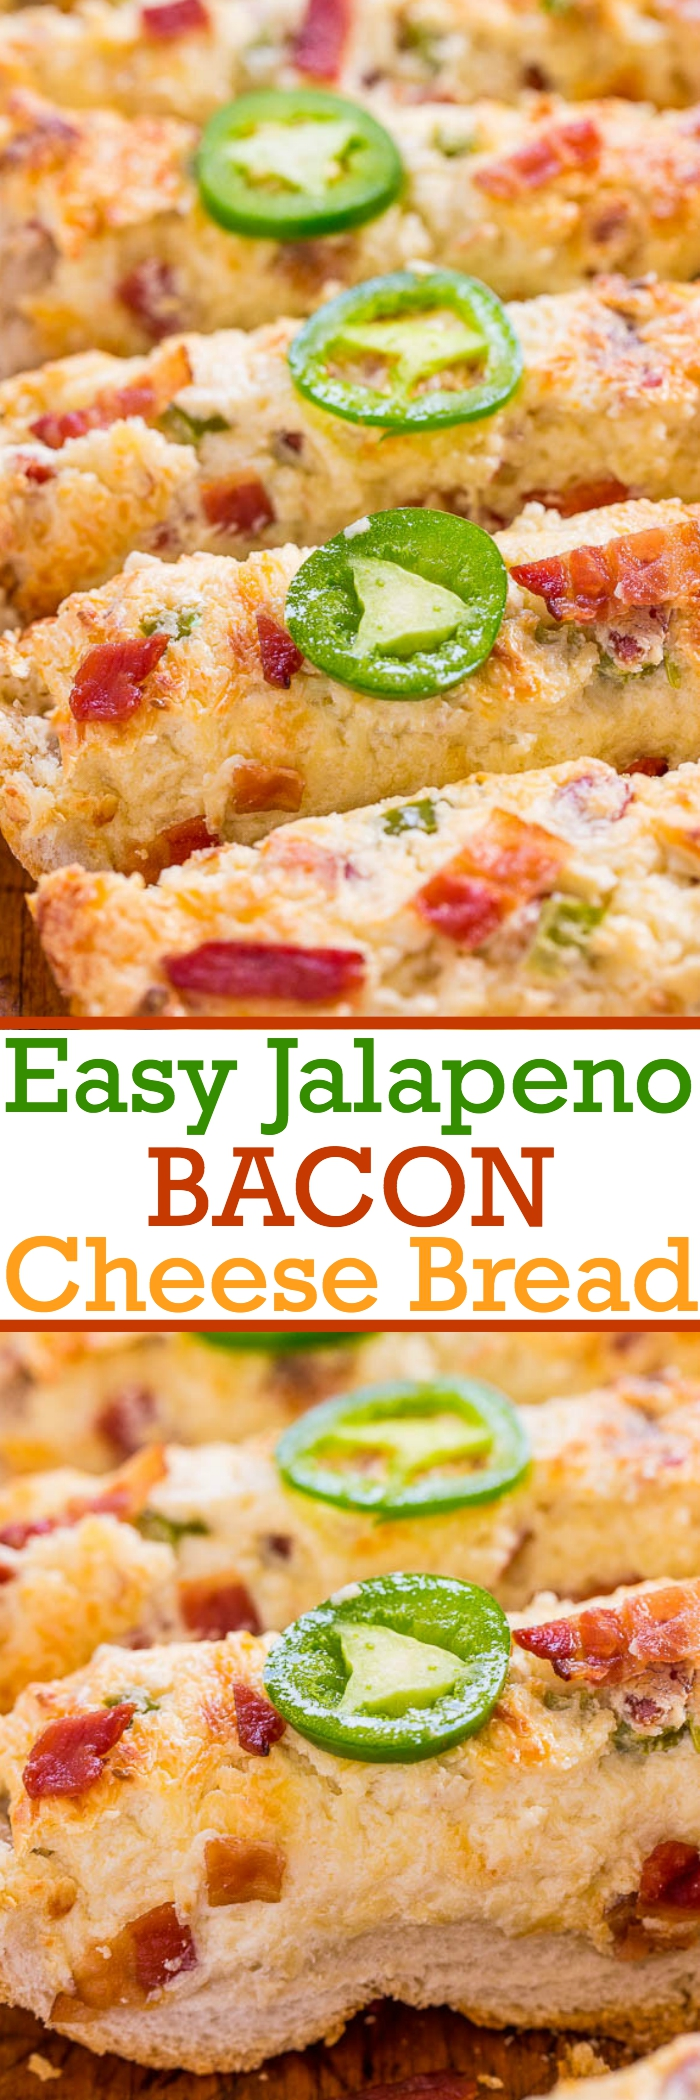 Easy Jalapeno Bacon Cheese Bread - Super cheesy, ready in 30 minutes, a gameday and crowd favorite that'll be devoured fast!! BACON makes everything BETTER!!